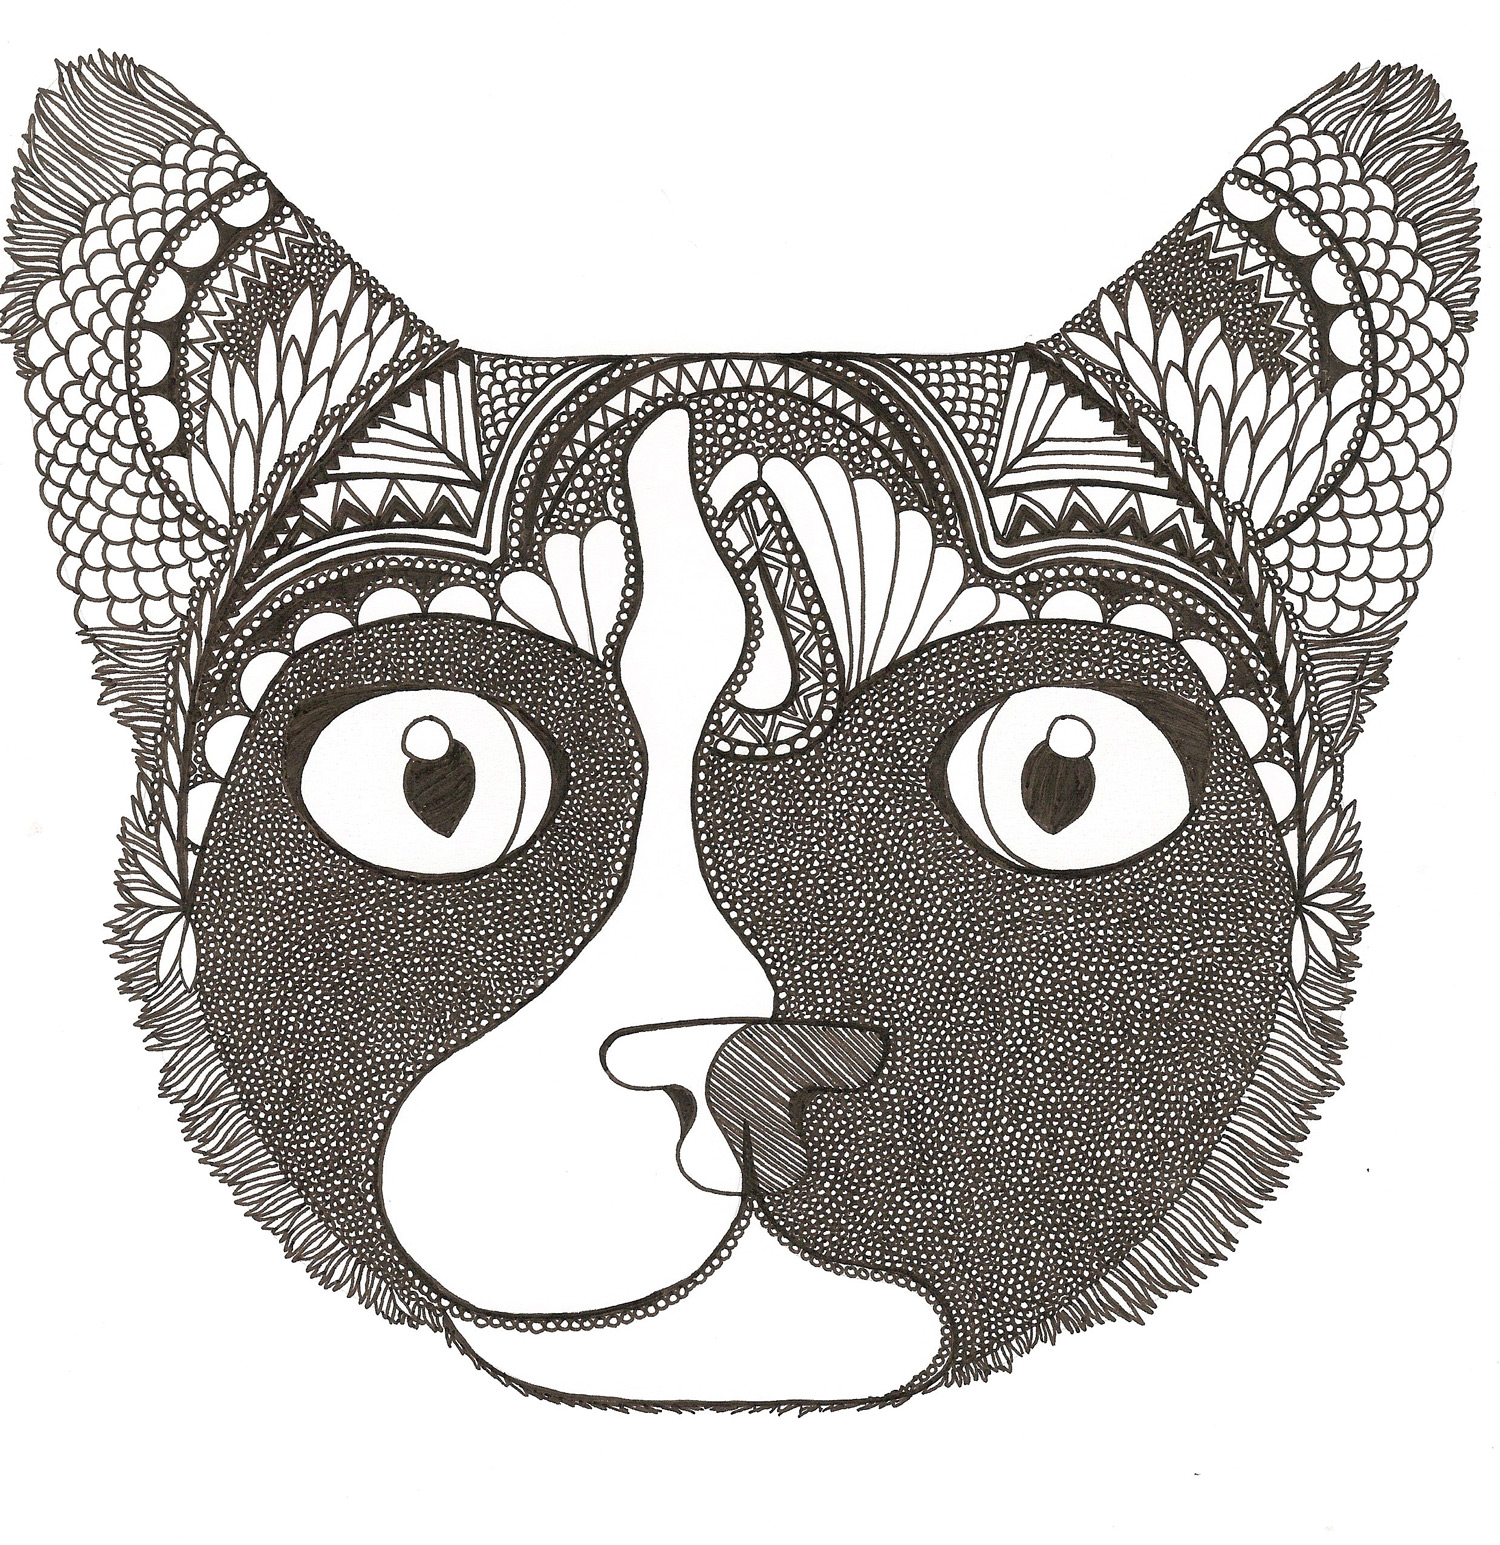 Liz Cox illustration of Quandary cat